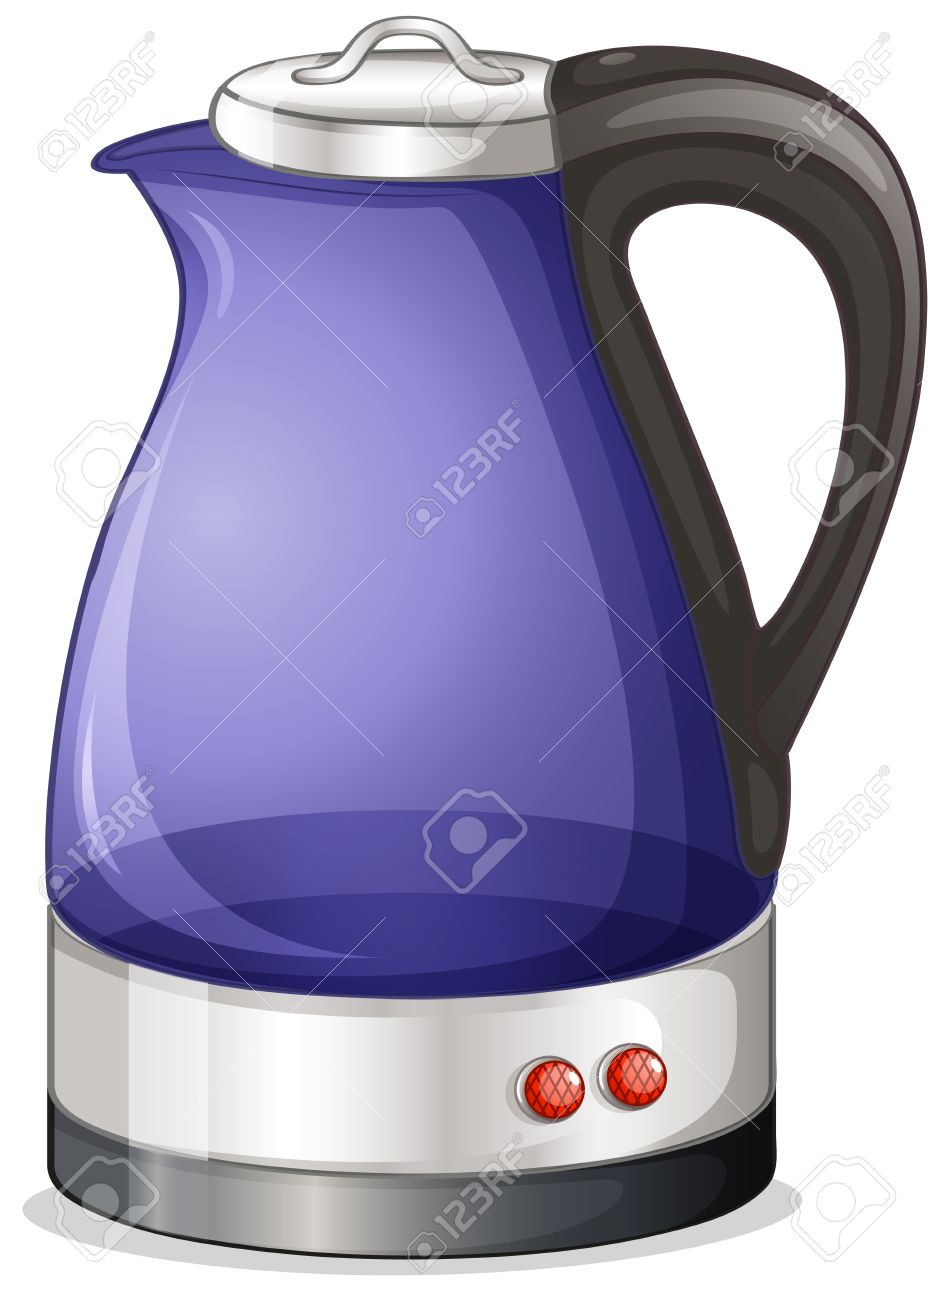 Illustration of an electric kettle on a white background Stock Vector - 18004998